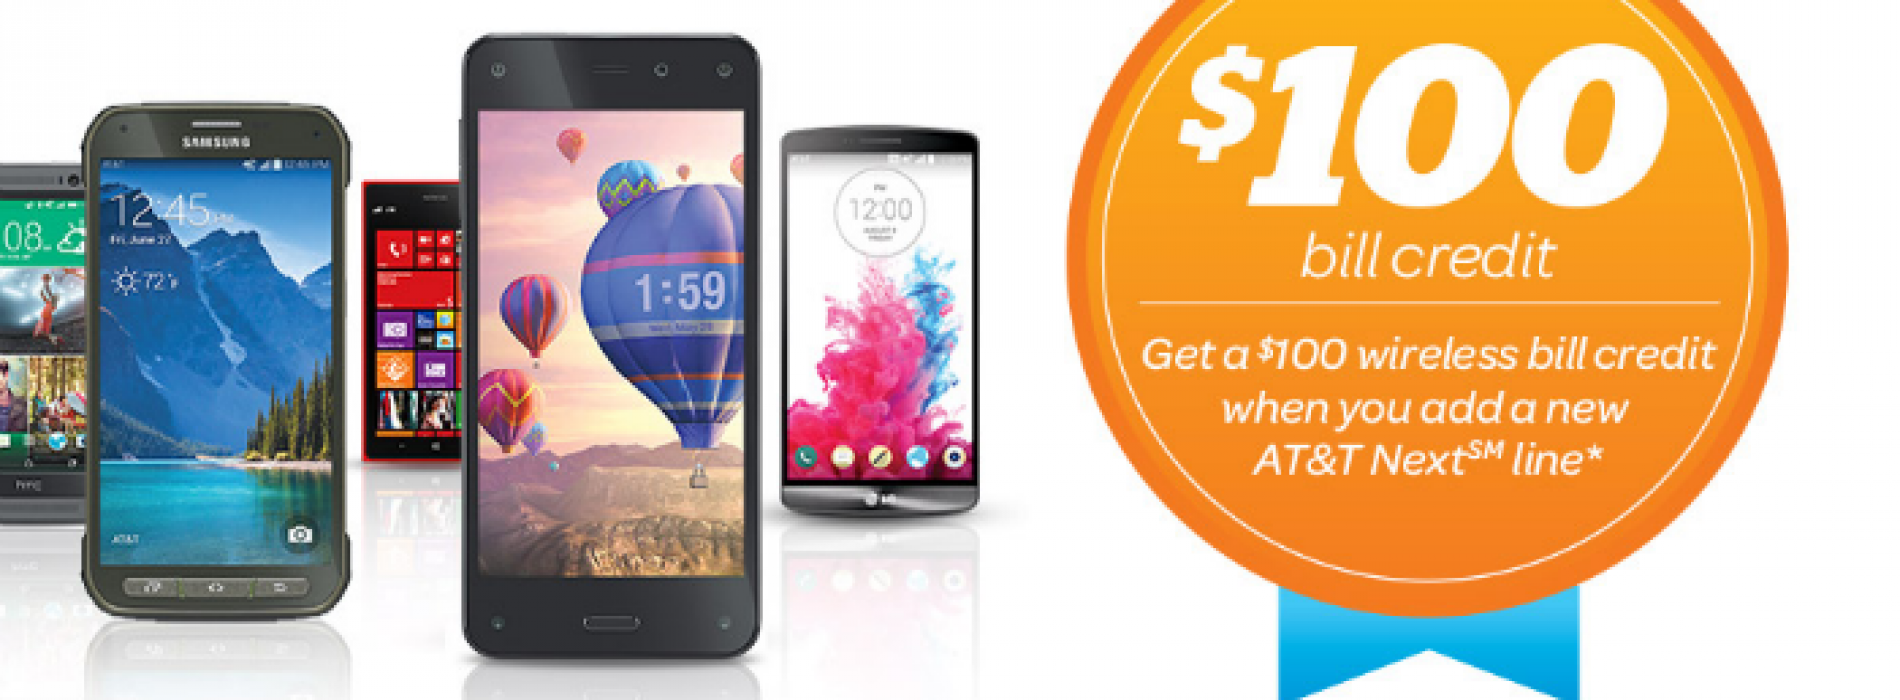 AT&T revives $100 credits for Next plan activations